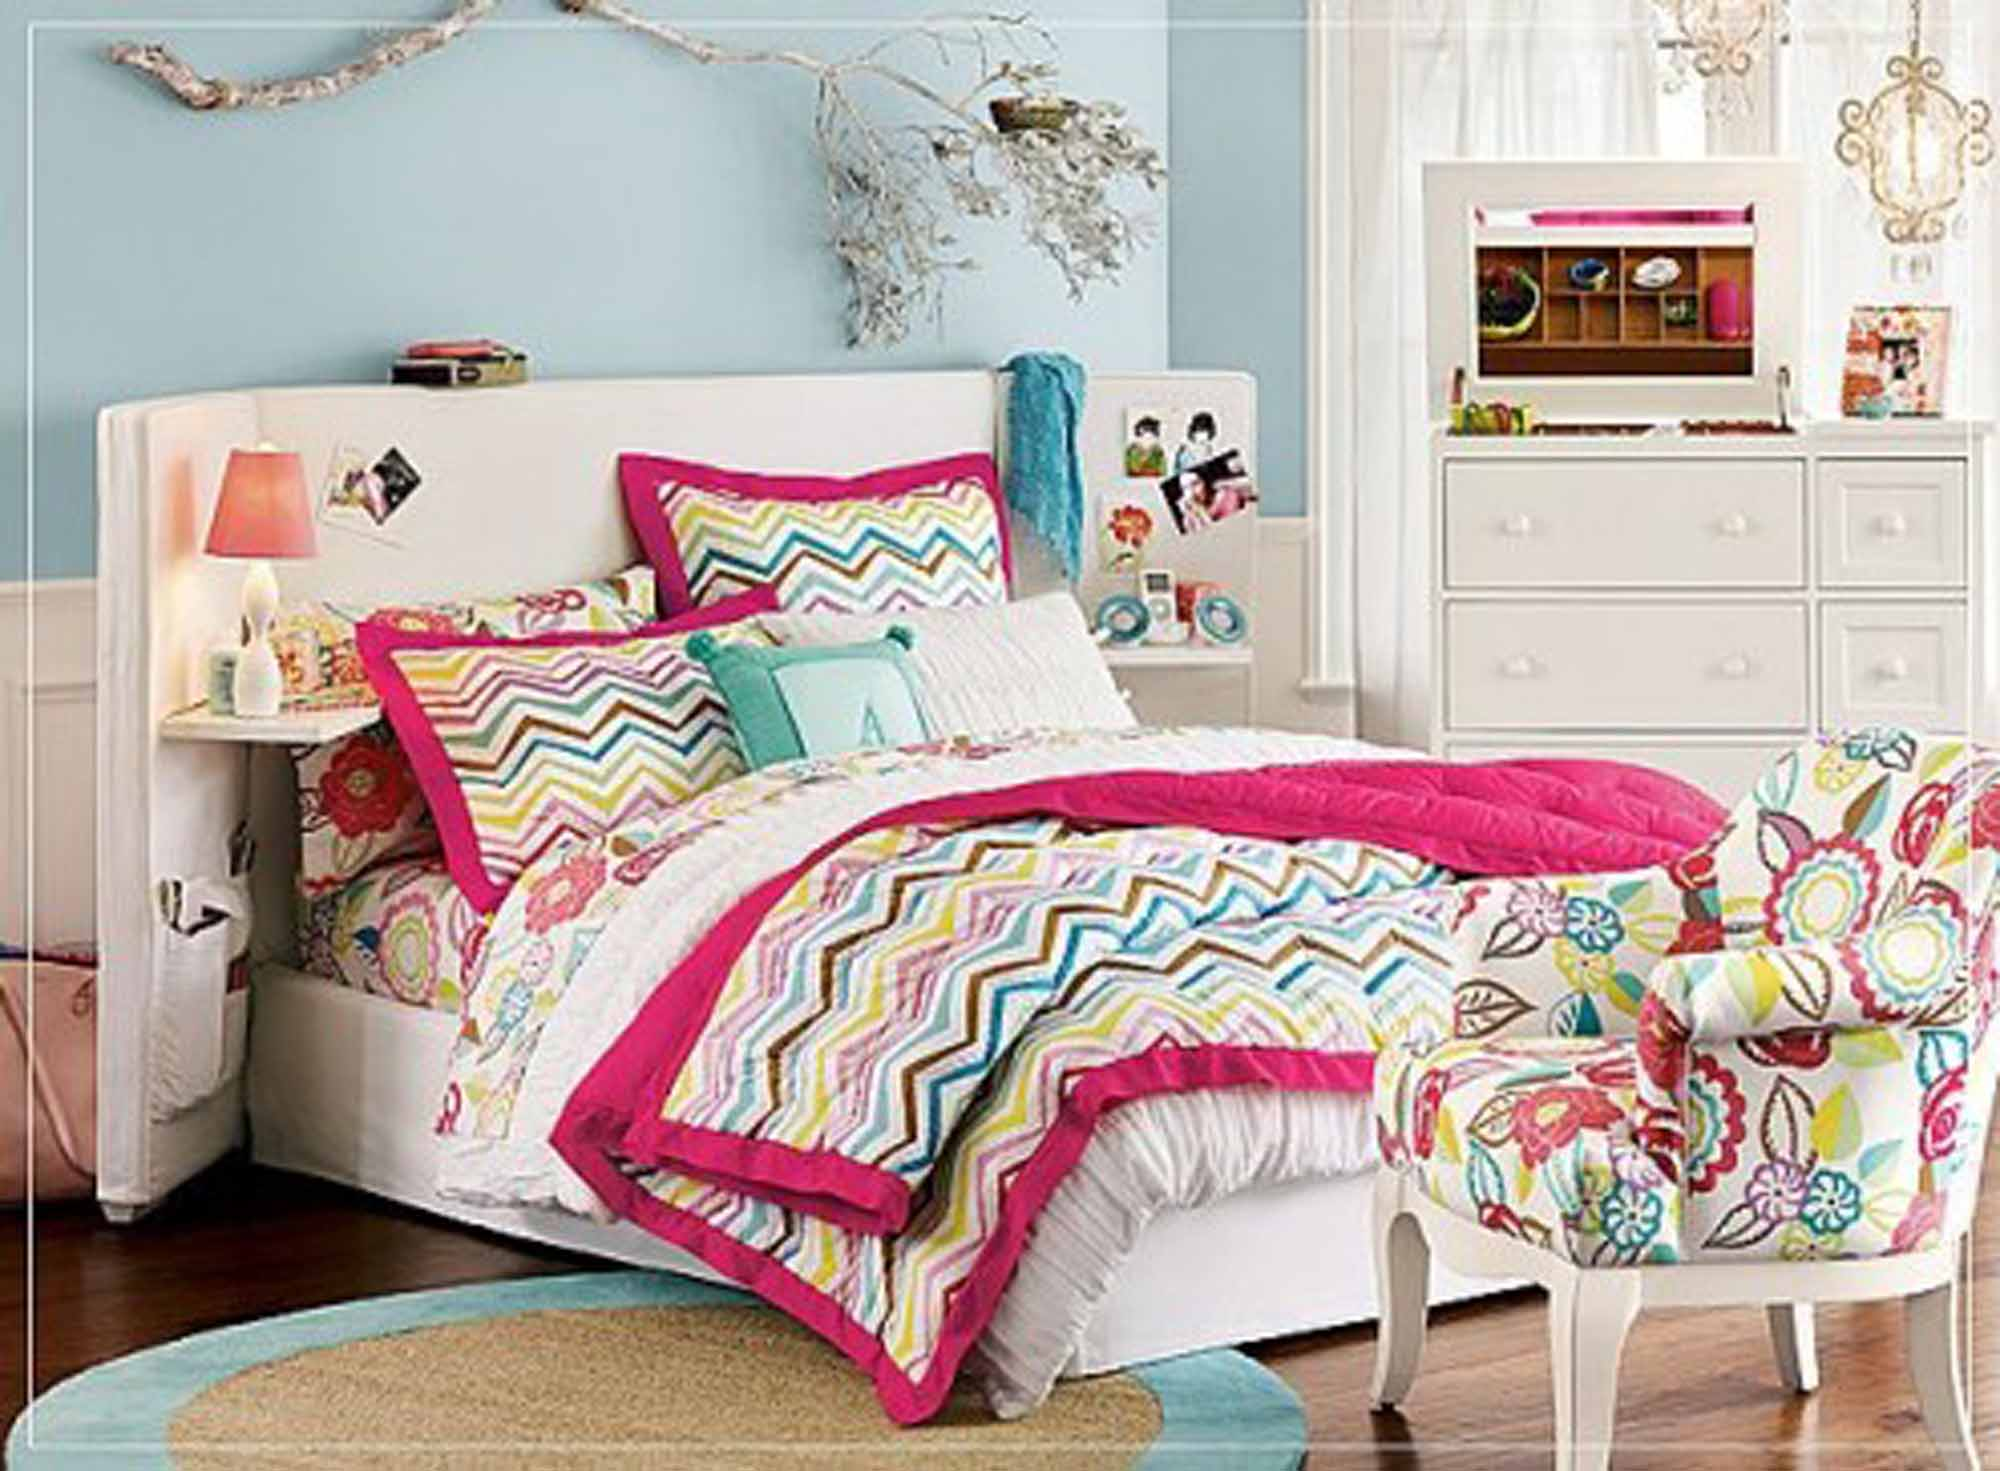 Teenage bedroom ideas for remodeling the bedroom - Teenage girl bedroom decorations ...